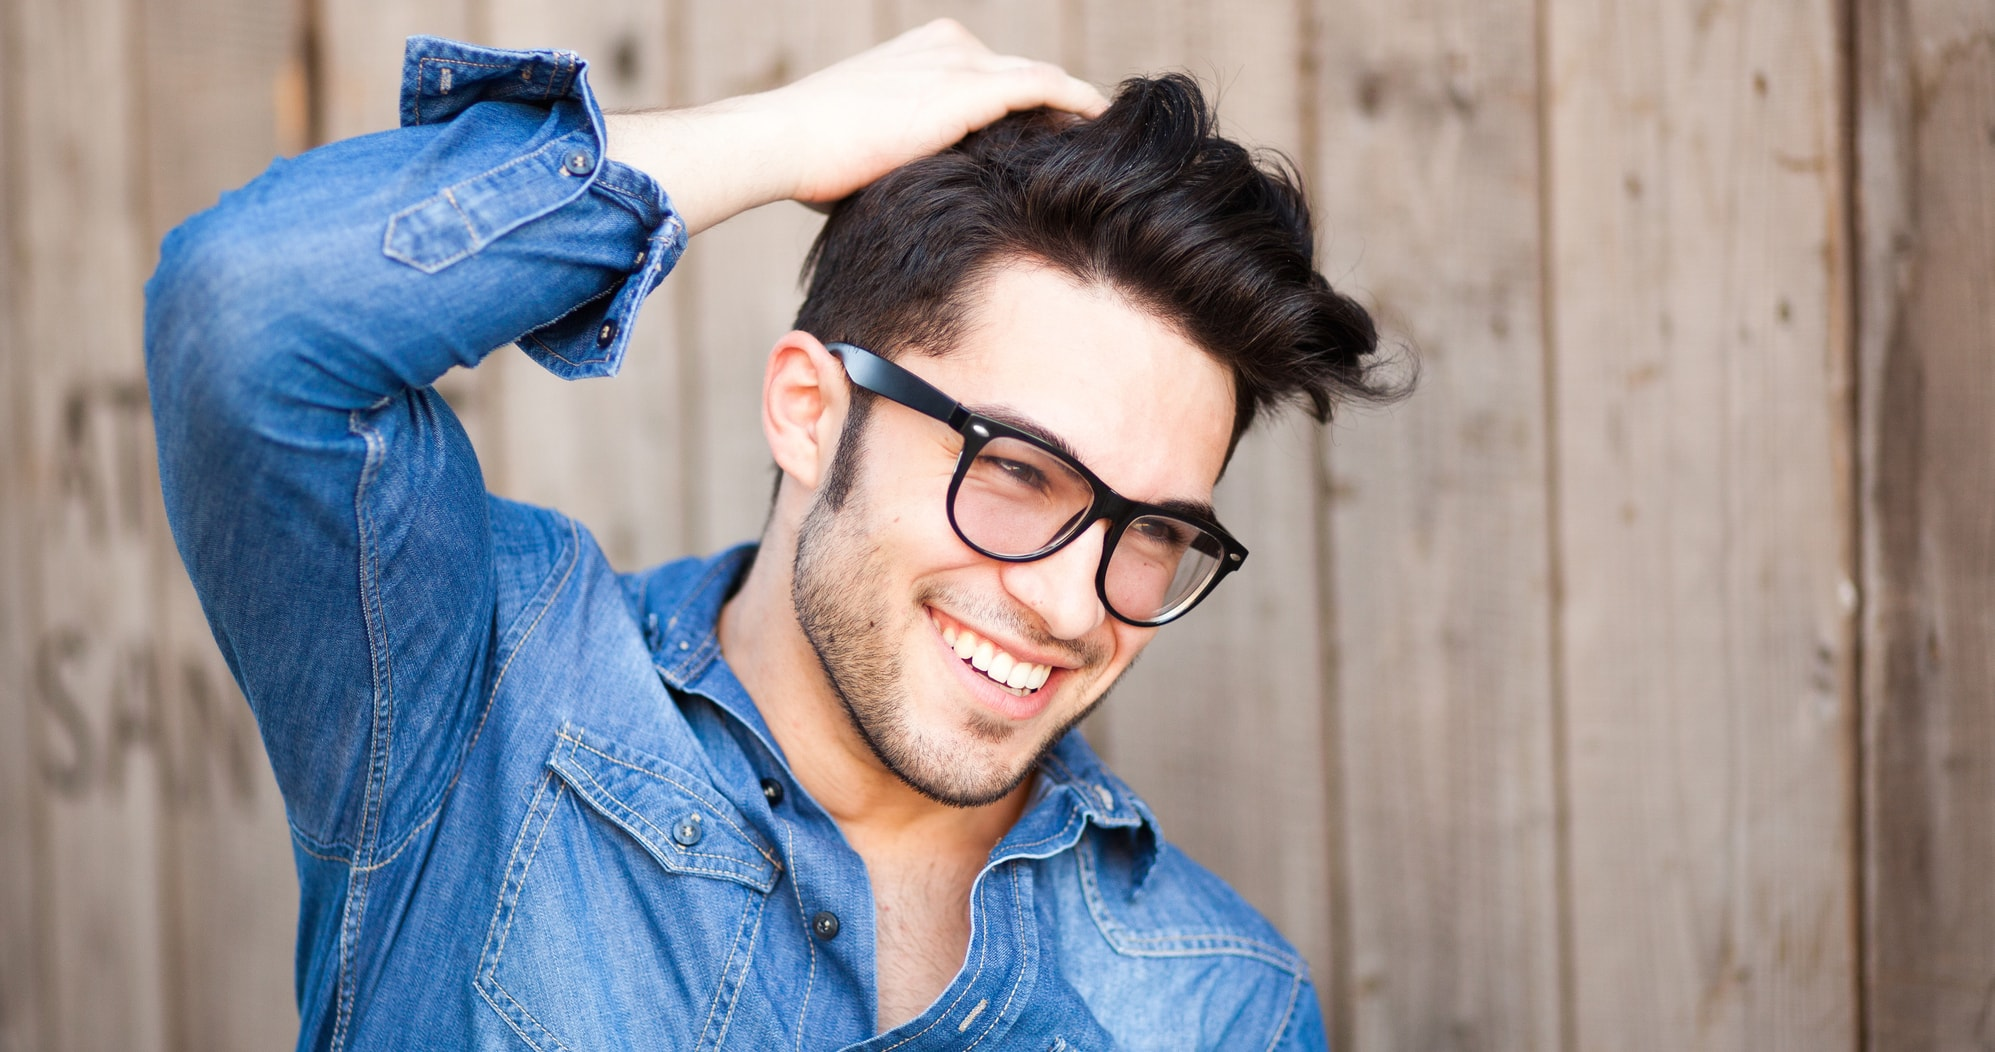 Learn everything you need to know about hair restoration